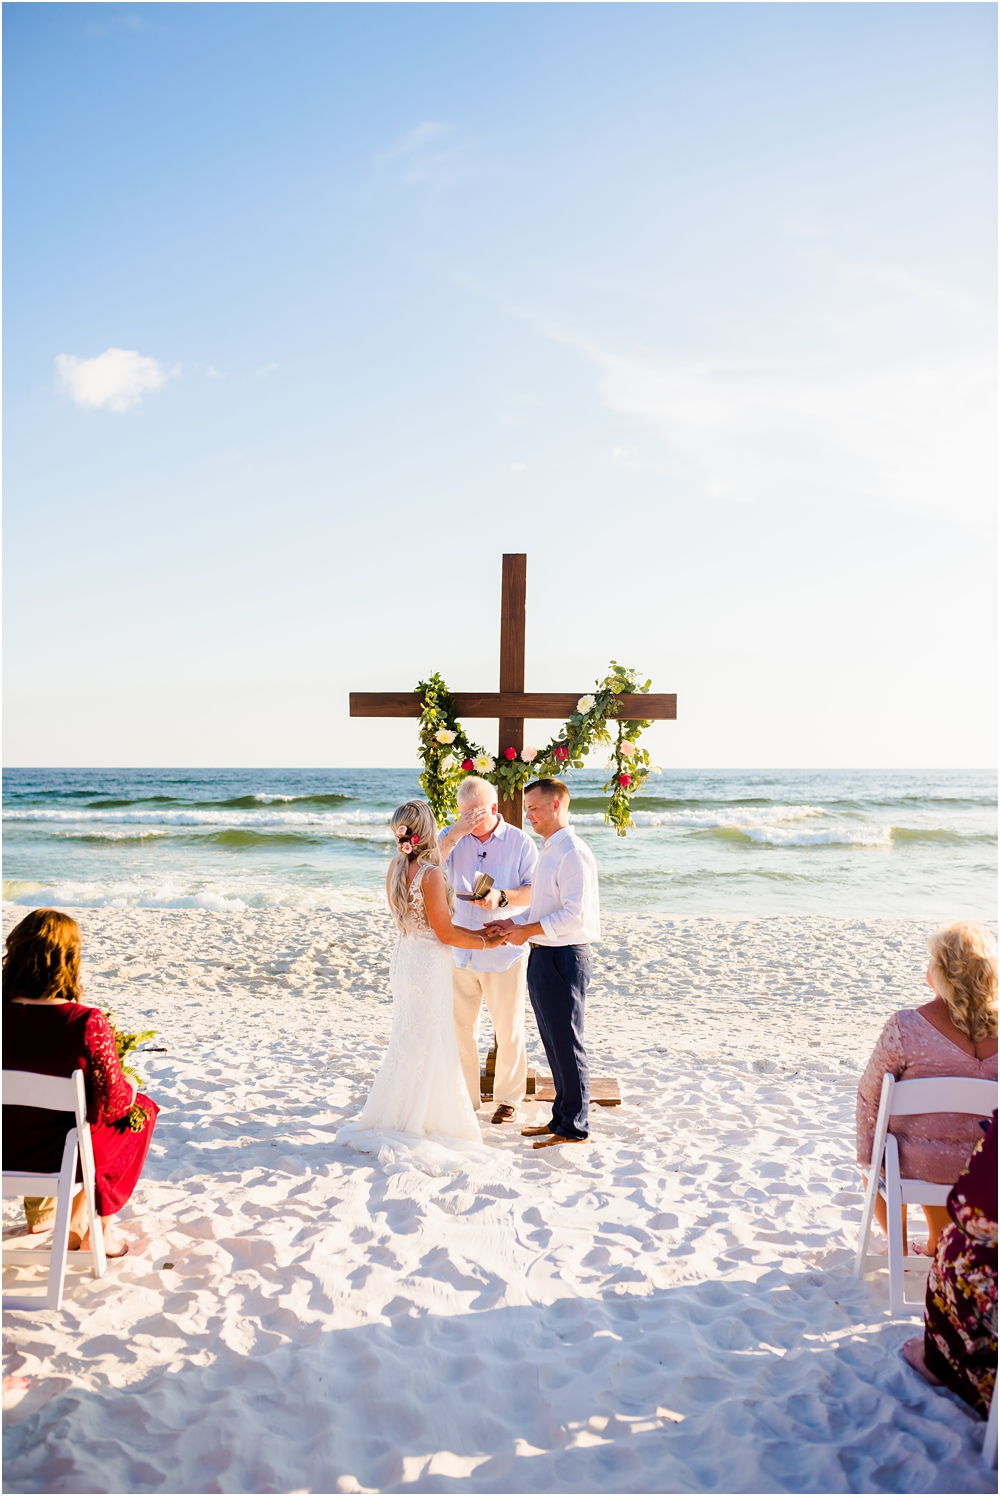 mcglothlin-wedding-kiersten-stevenson-photography-30a-panama-city-beach-dothan-tallahassee-(88-of-145).jpg